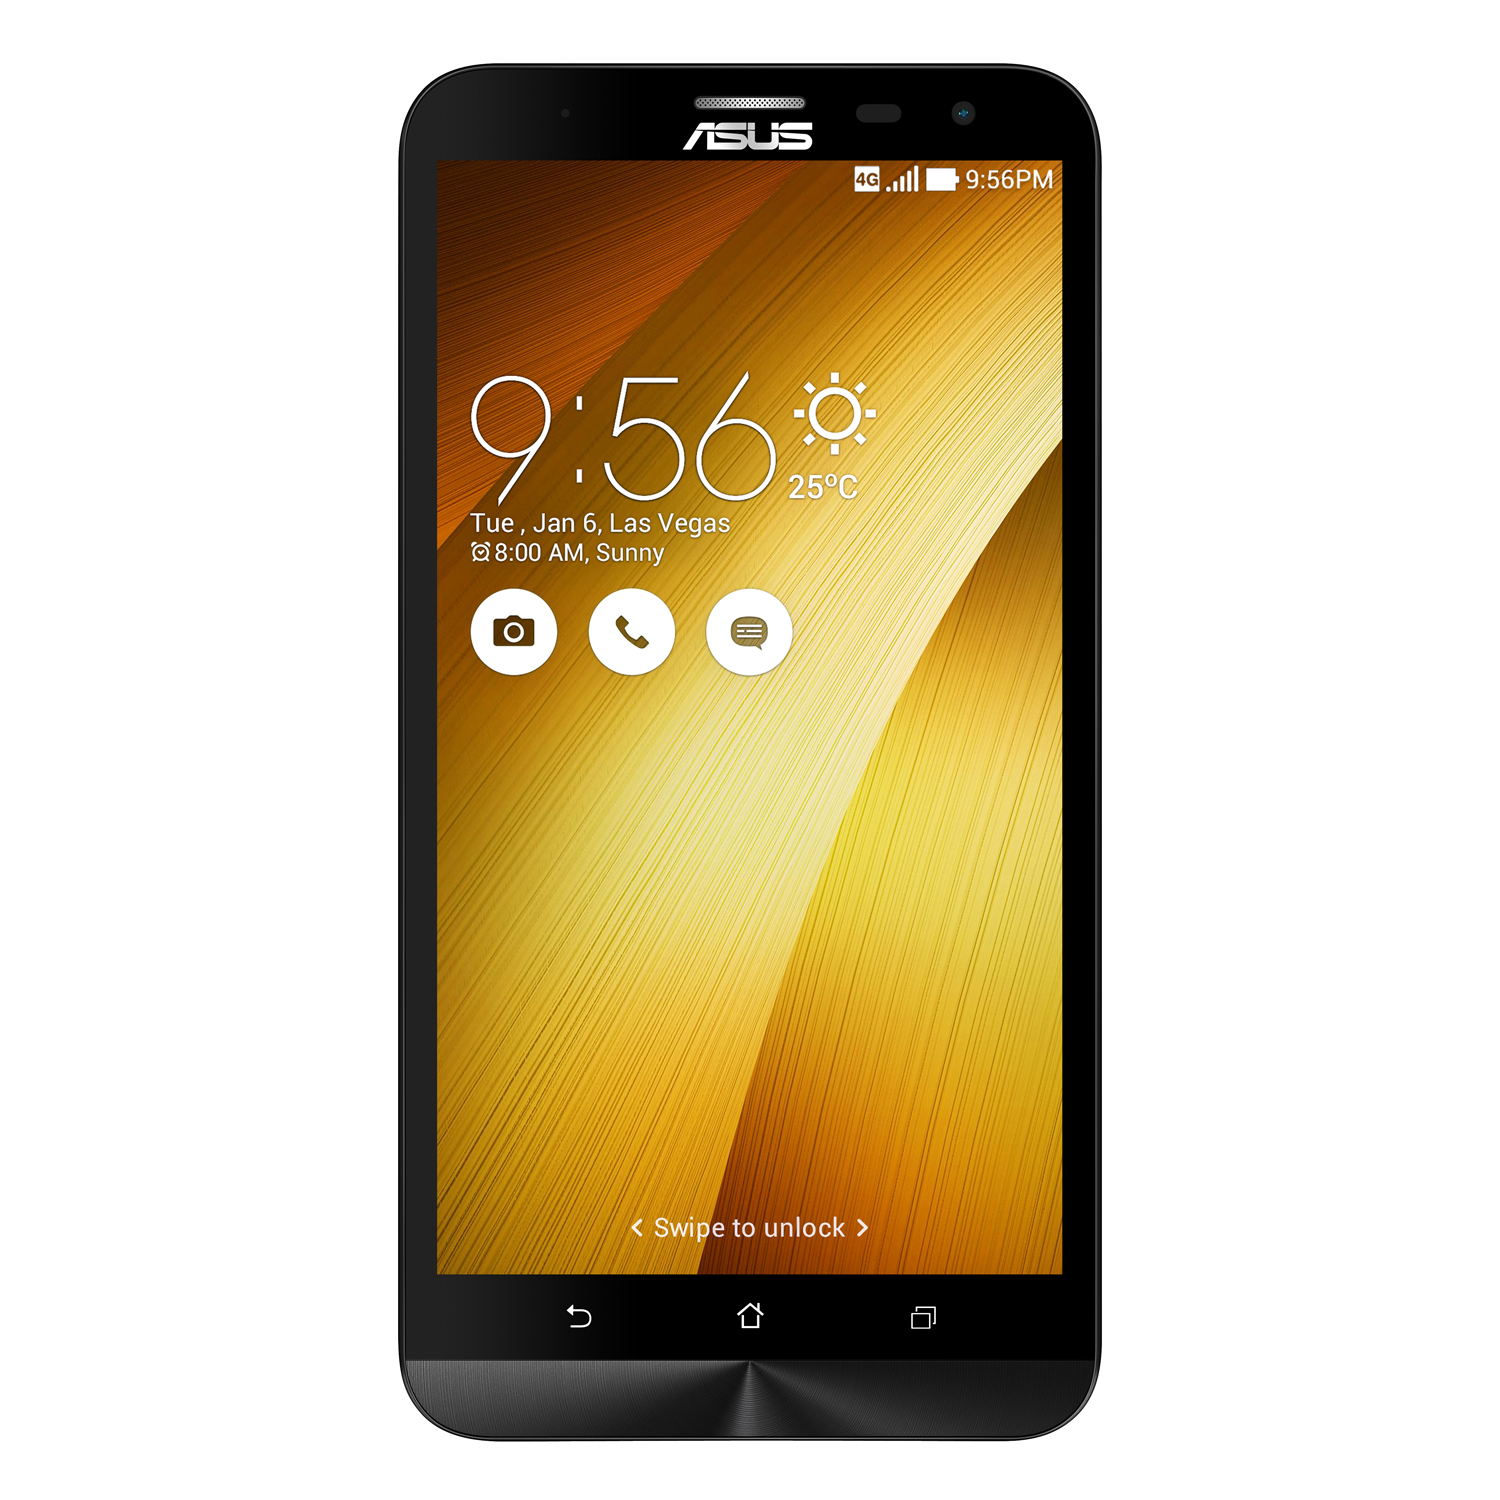 asus zenfone 2 laser or mobile smartphone asus sur. Black Bedroom Furniture Sets. Home Design Ideas